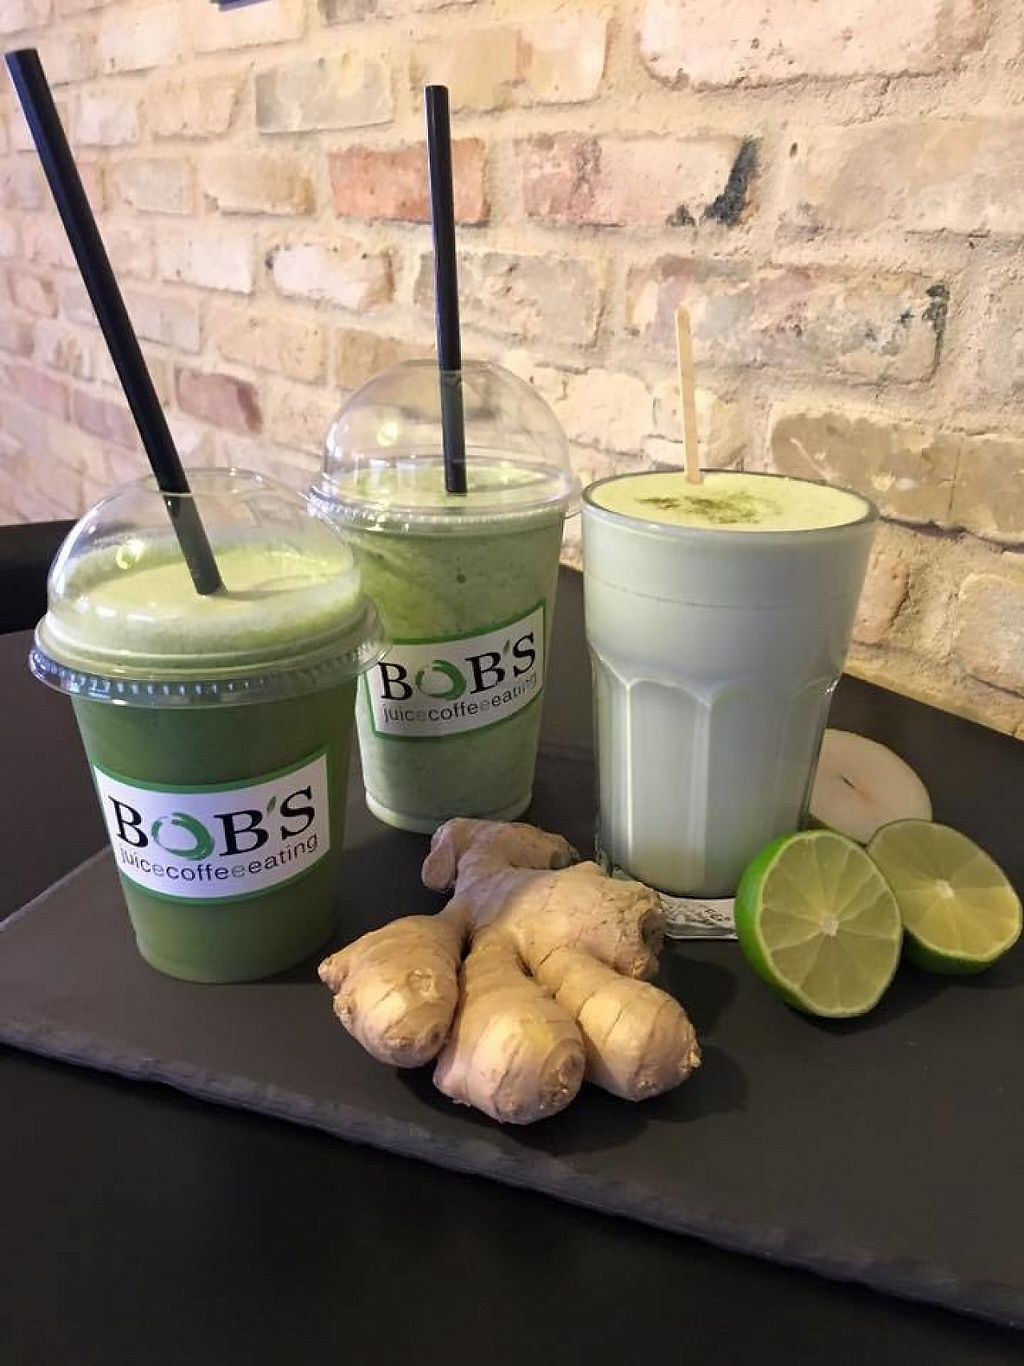 """Photo of Bob's Juicebar  by <a href=""""/members/profile/community"""">community</a> <br/>fresh juices  <br/> February 16, 2017  - <a href='/contact/abuse/image/77796/227011'>Report</a>"""